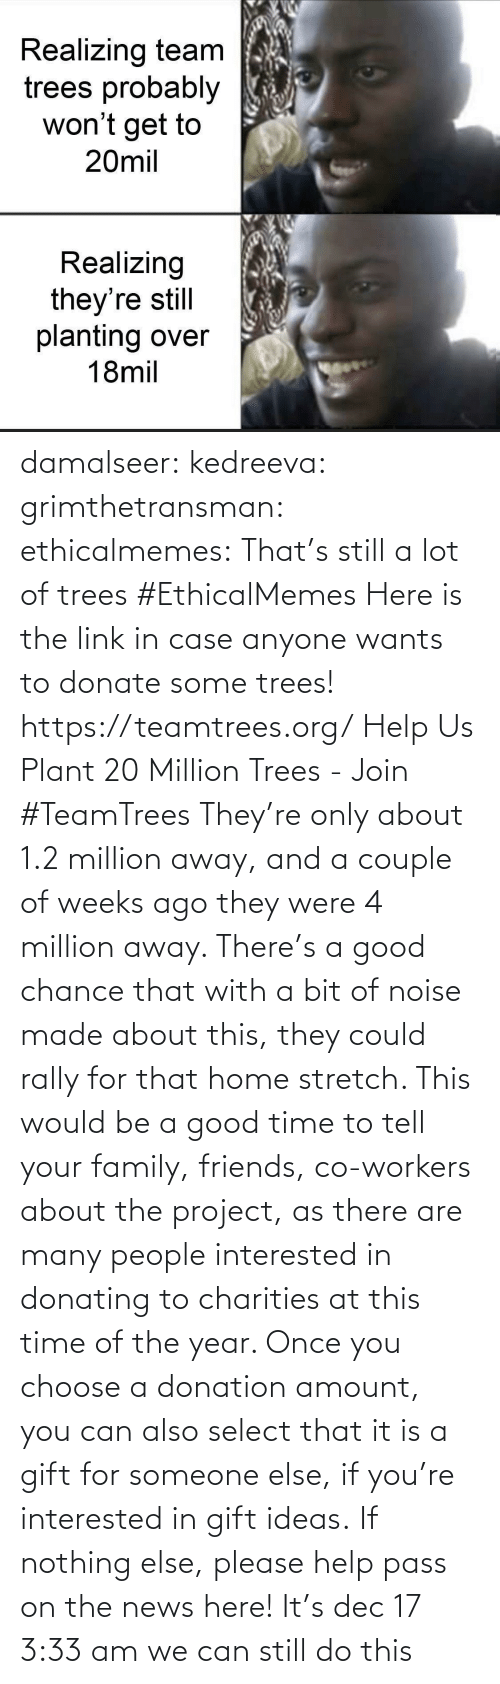 Join: Realizing team  trees probably  won't get to  20mil  Realizing  they're still  planting over  18mil damalseer:  kedreeva: grimthetransman:  ethicalmemes:  That's still a lot of trees #EthicalMemes   Here is the link in case anyone wants to donate some trees!  https://teamtrees.org/ Help Us Plant 20 Million Trees - Join #TeamTrees  They're only about 1.2 million away, and a couple of weeks ago they were 4 million away. There's a good chance that with a bit of noise made about this, they could rally for that home stretch. This would be a good time to tell your family, friends, co-workers about the project, as there are many people interested in donating to charities at this time of the year. Once you choose a donation amount, you can also select that it is a gift for someone else, if you're interested in gift ideas. If nothing else, please help pass on the news here!    It's dec 17 3:33 am we can still do this